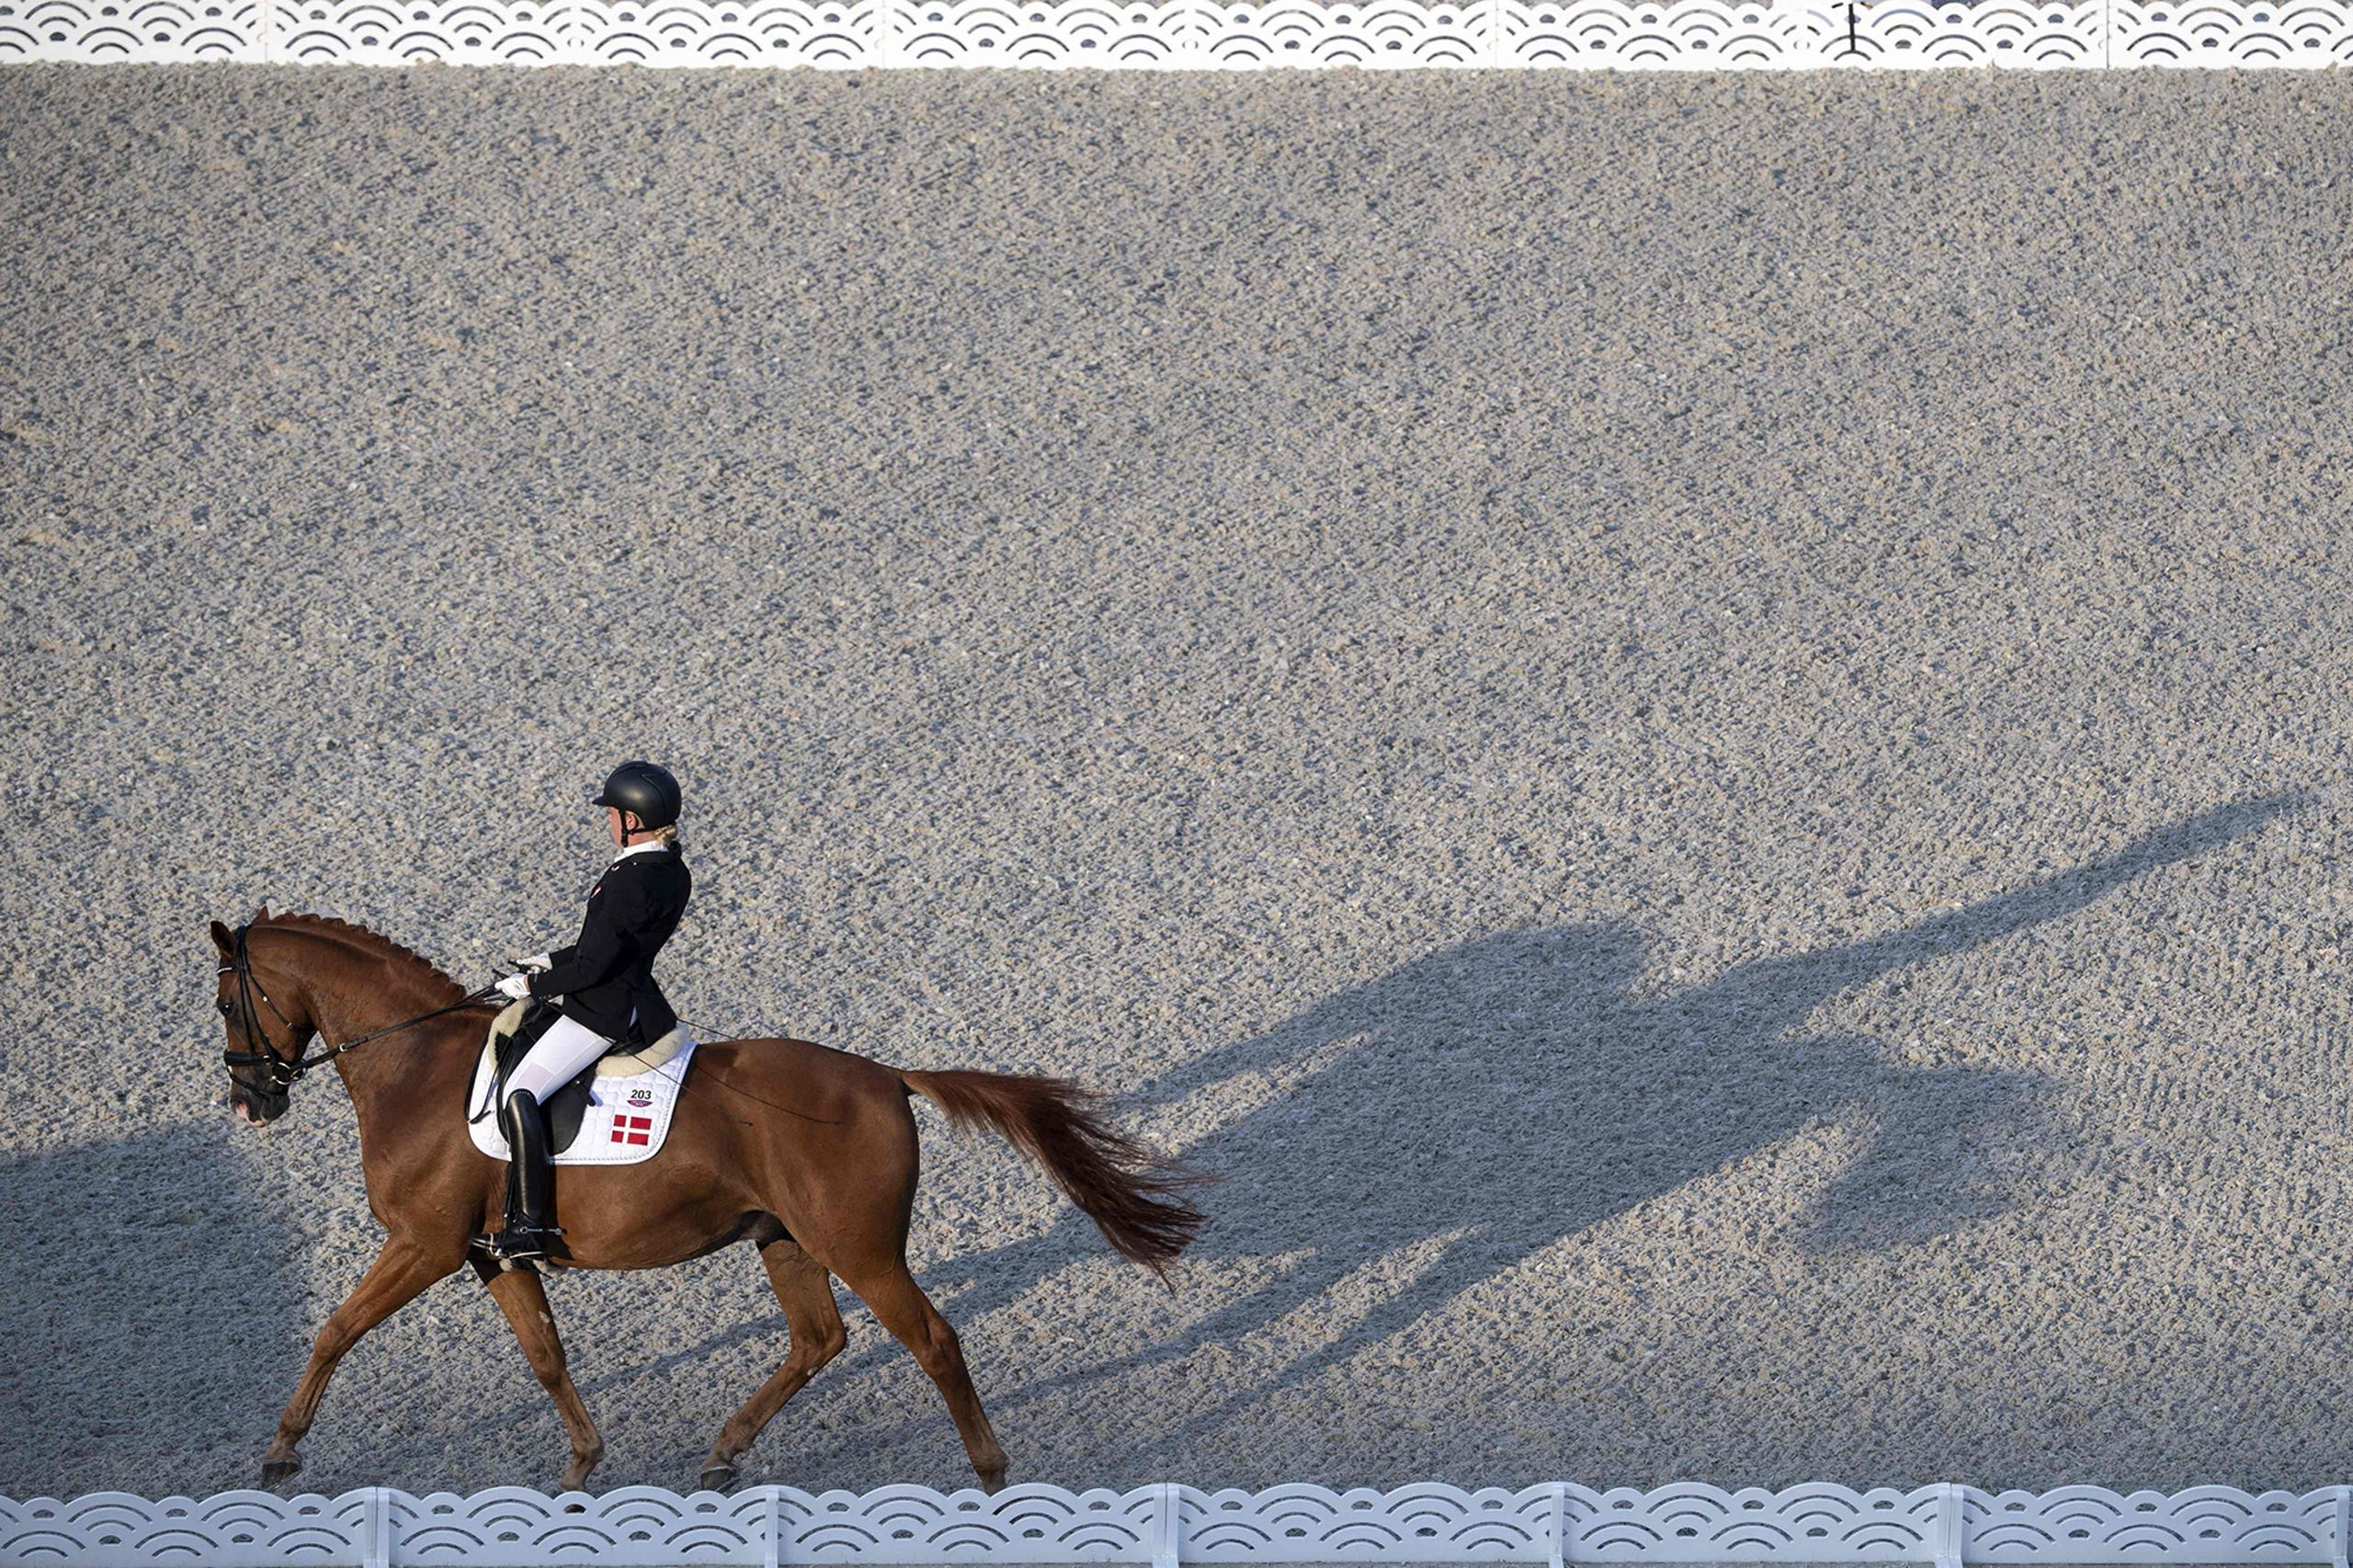 Aug. 28, 2021: Denmark's Katrine Kristensen riding Welldone Dallas competes in the equestrian dressage team test to music grade II during the Tokyo 2020 Paralympic Games at Equestrian Park in Tokyo.